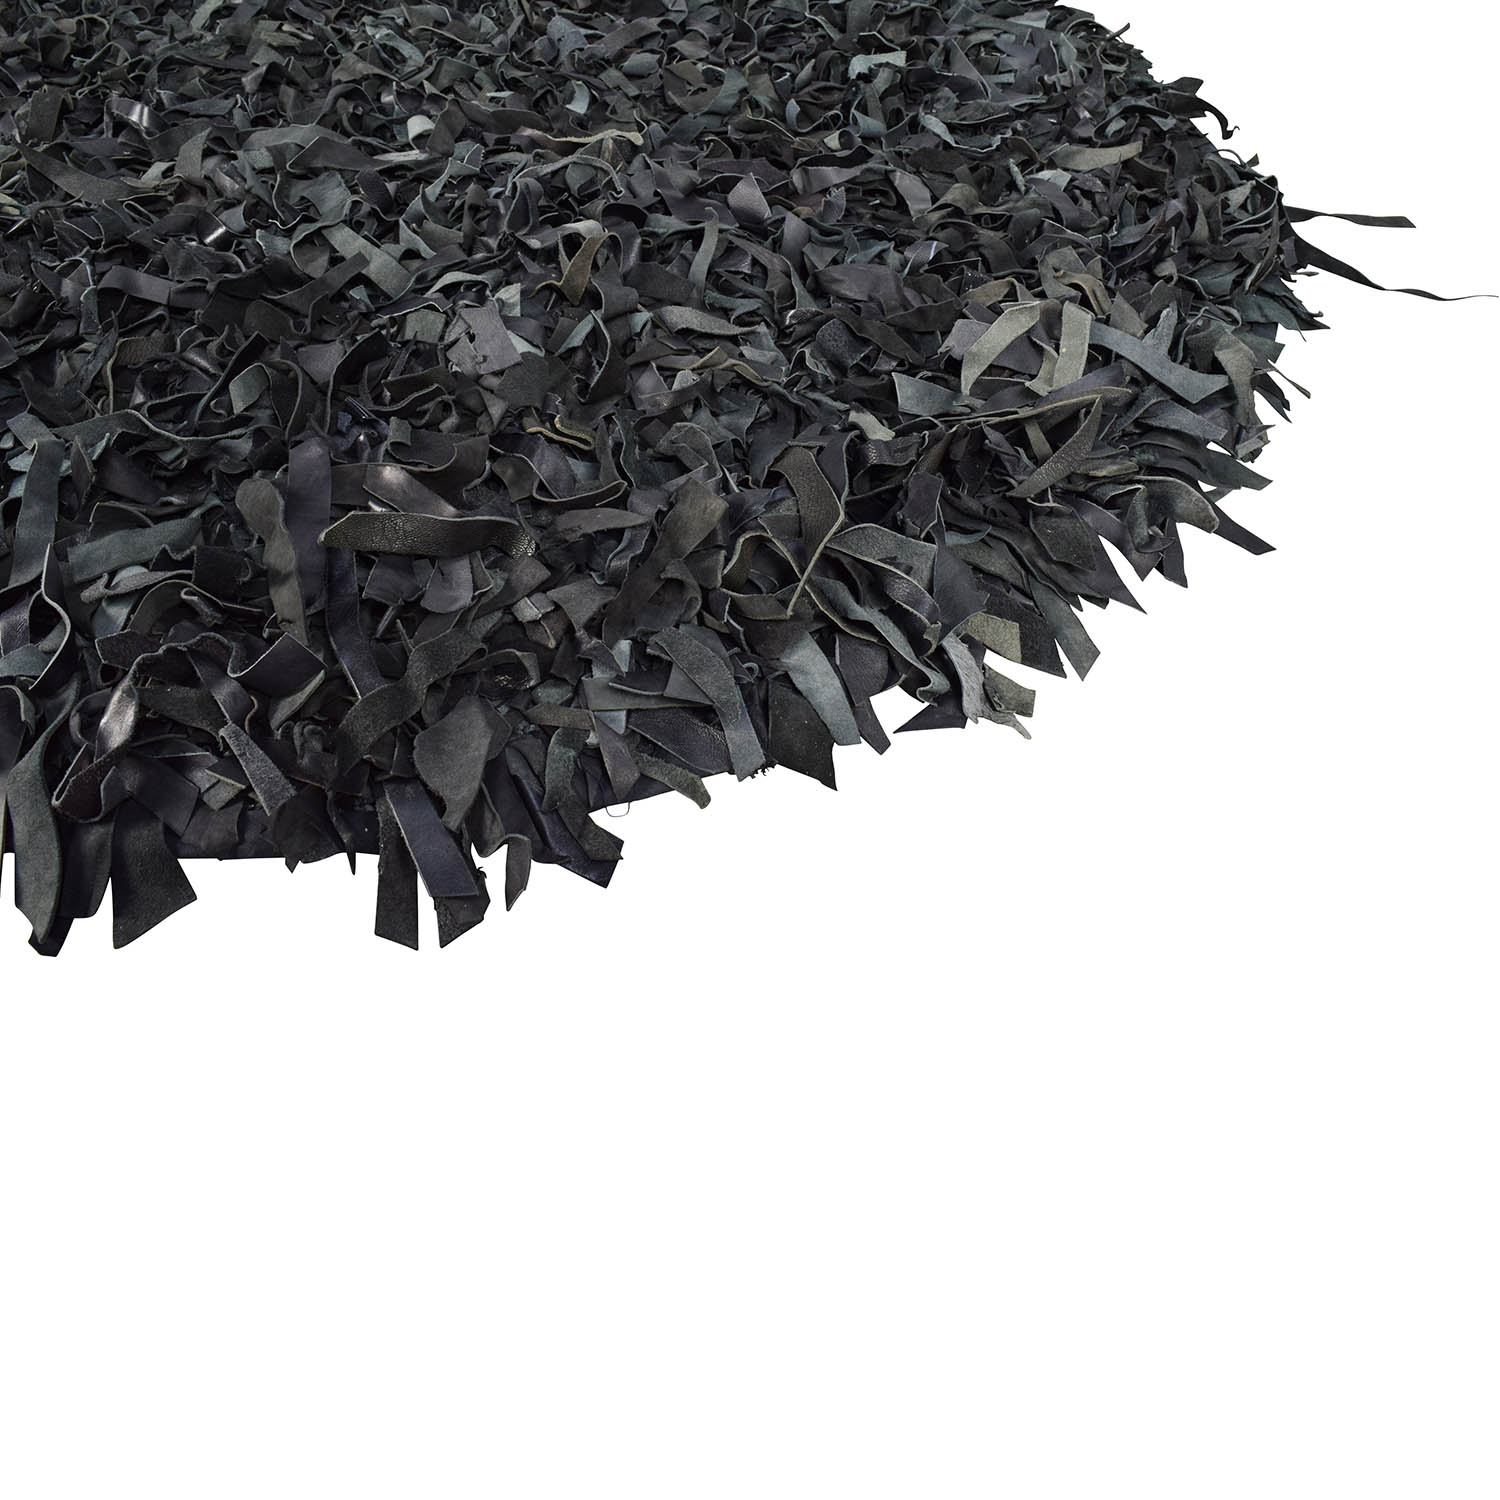 Rugs USA Black Leather Round Area Rug / Rugs